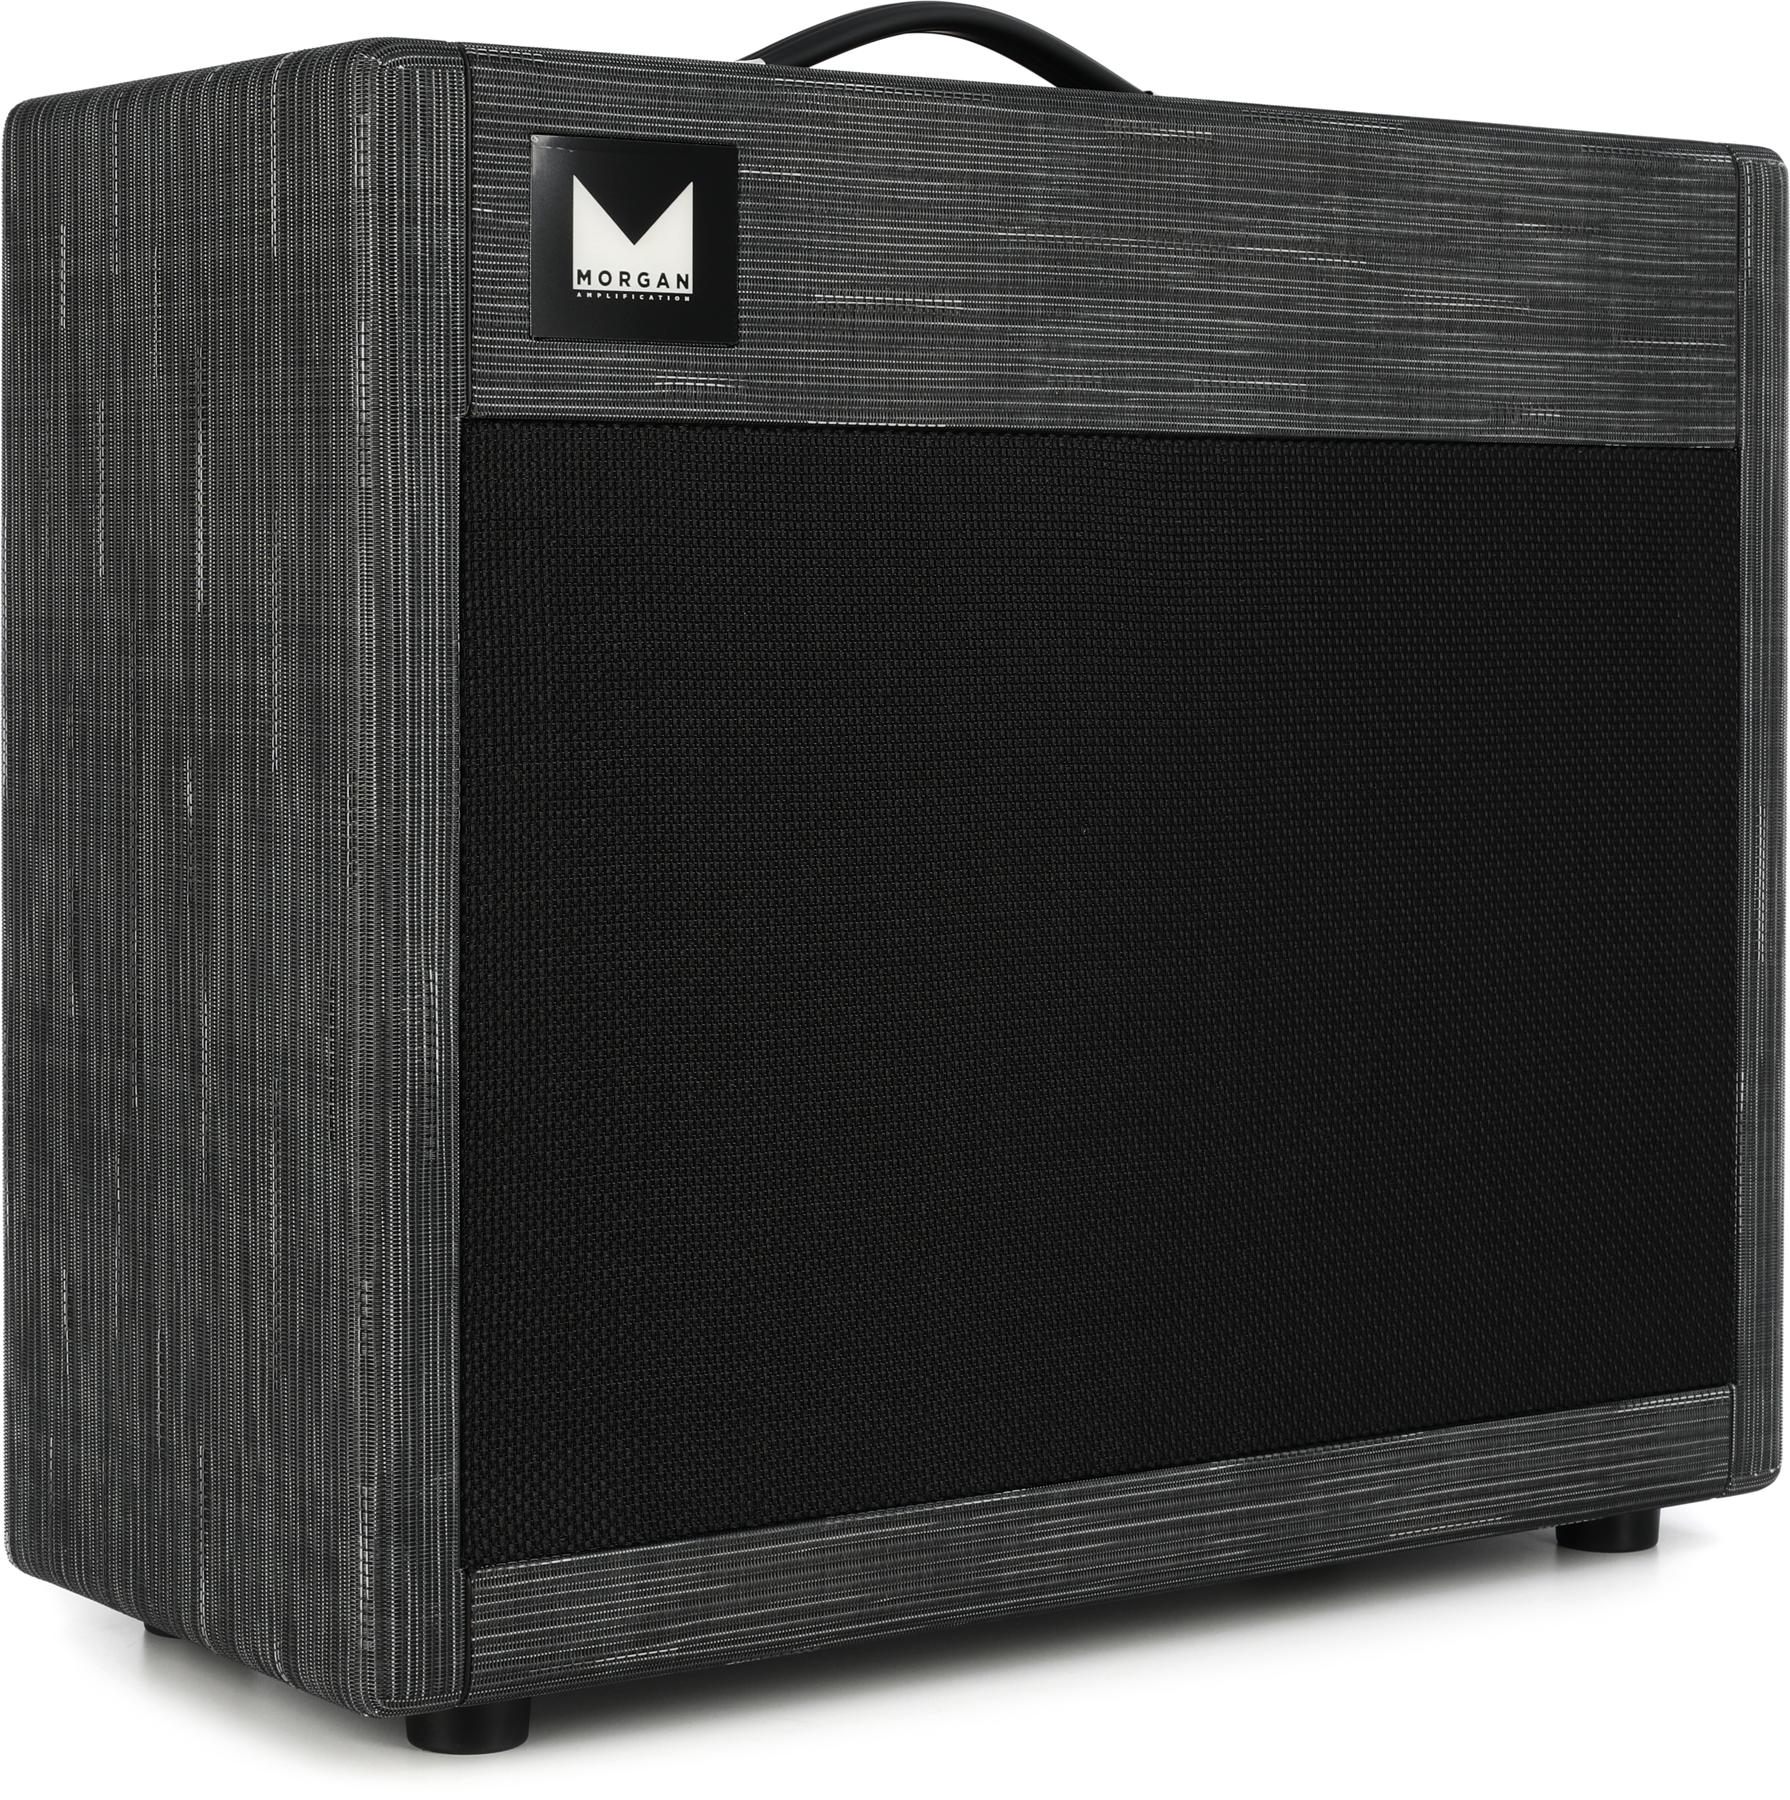 5. Morgan Amps 112